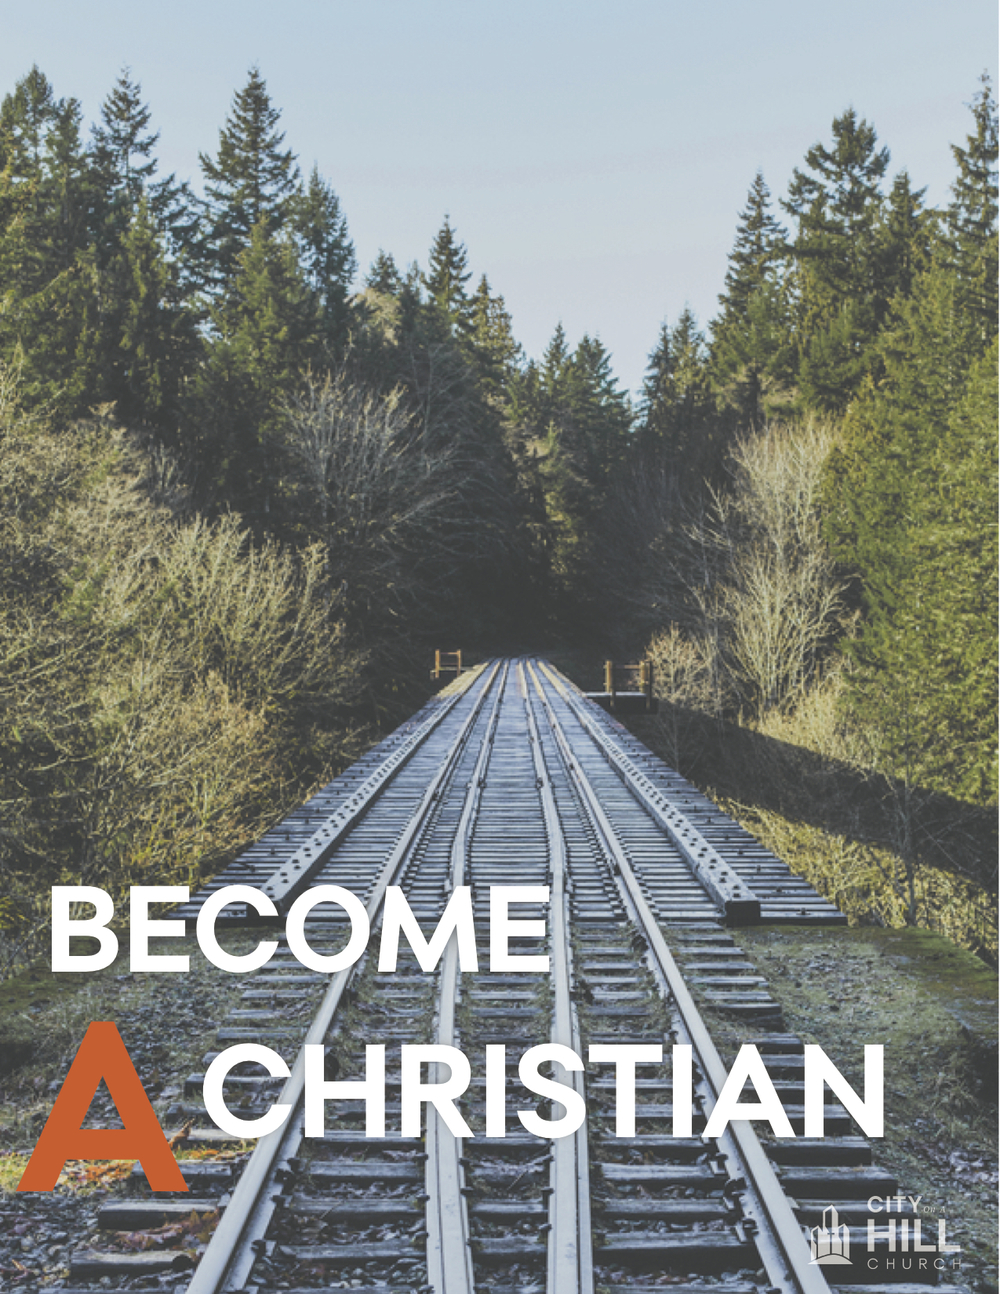 Become_Christian_by_CoaH.jpg